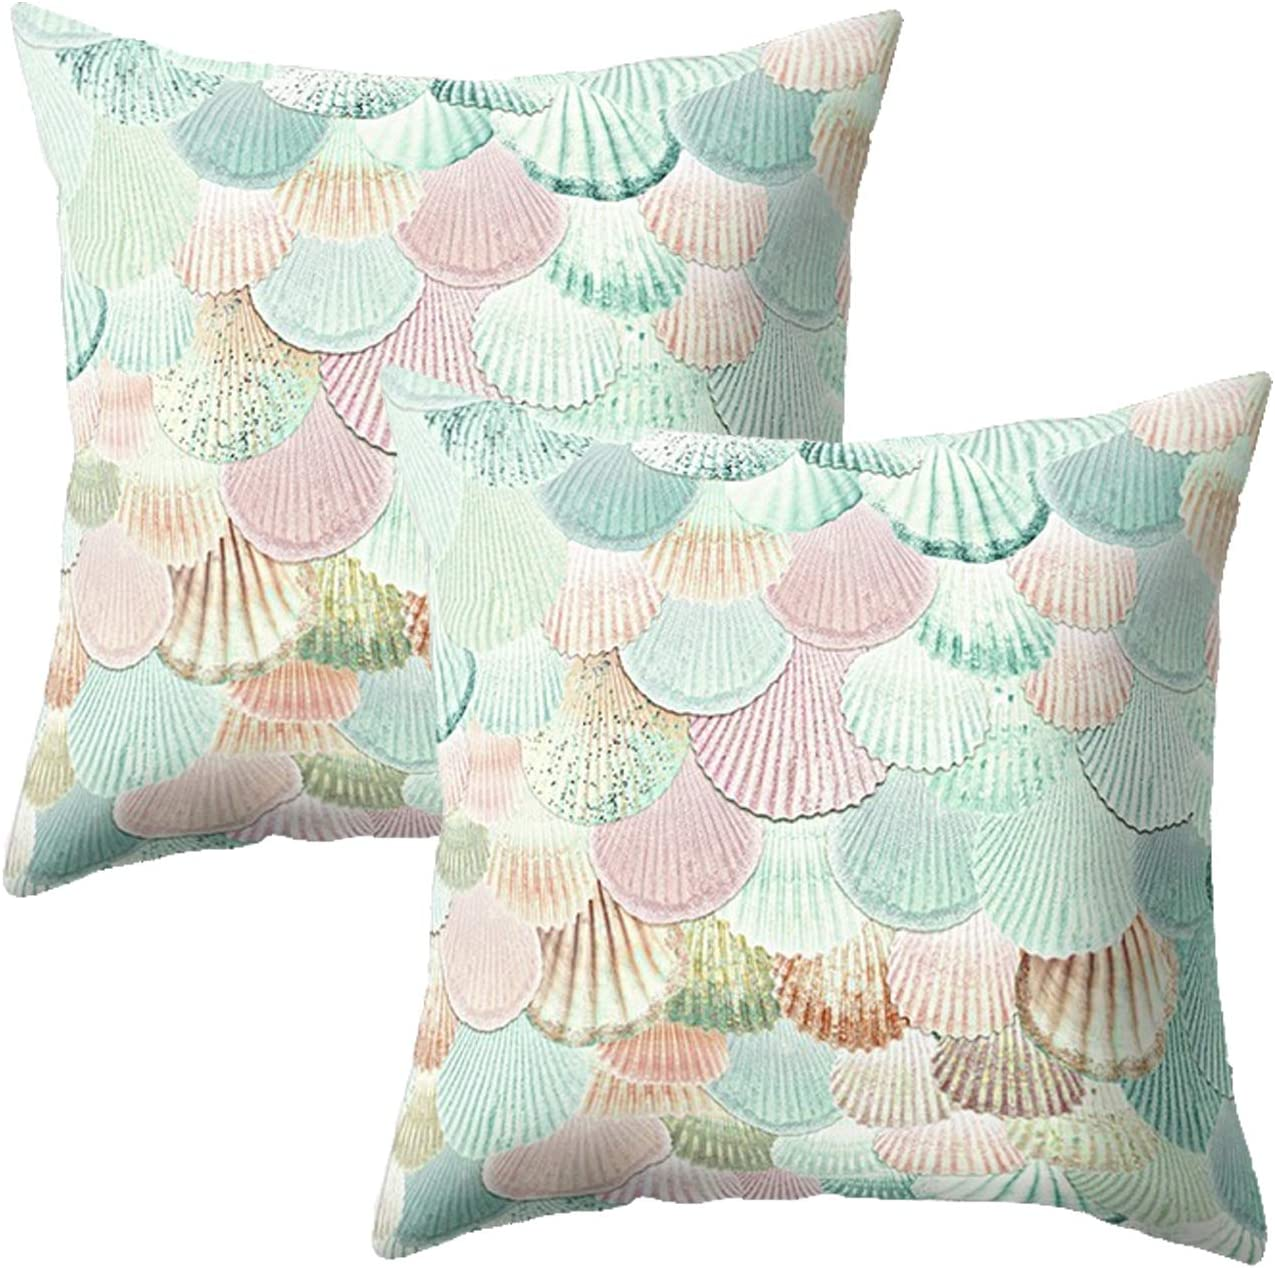 """Treely Mermaid Pillow Cases Decorative Mermaid Scale Throw Pillow Covers Set of 2 Cushion Covers 18"""" x 18"""" for Beach Couch Sofa(Floral Printed Teal-Pink)"""